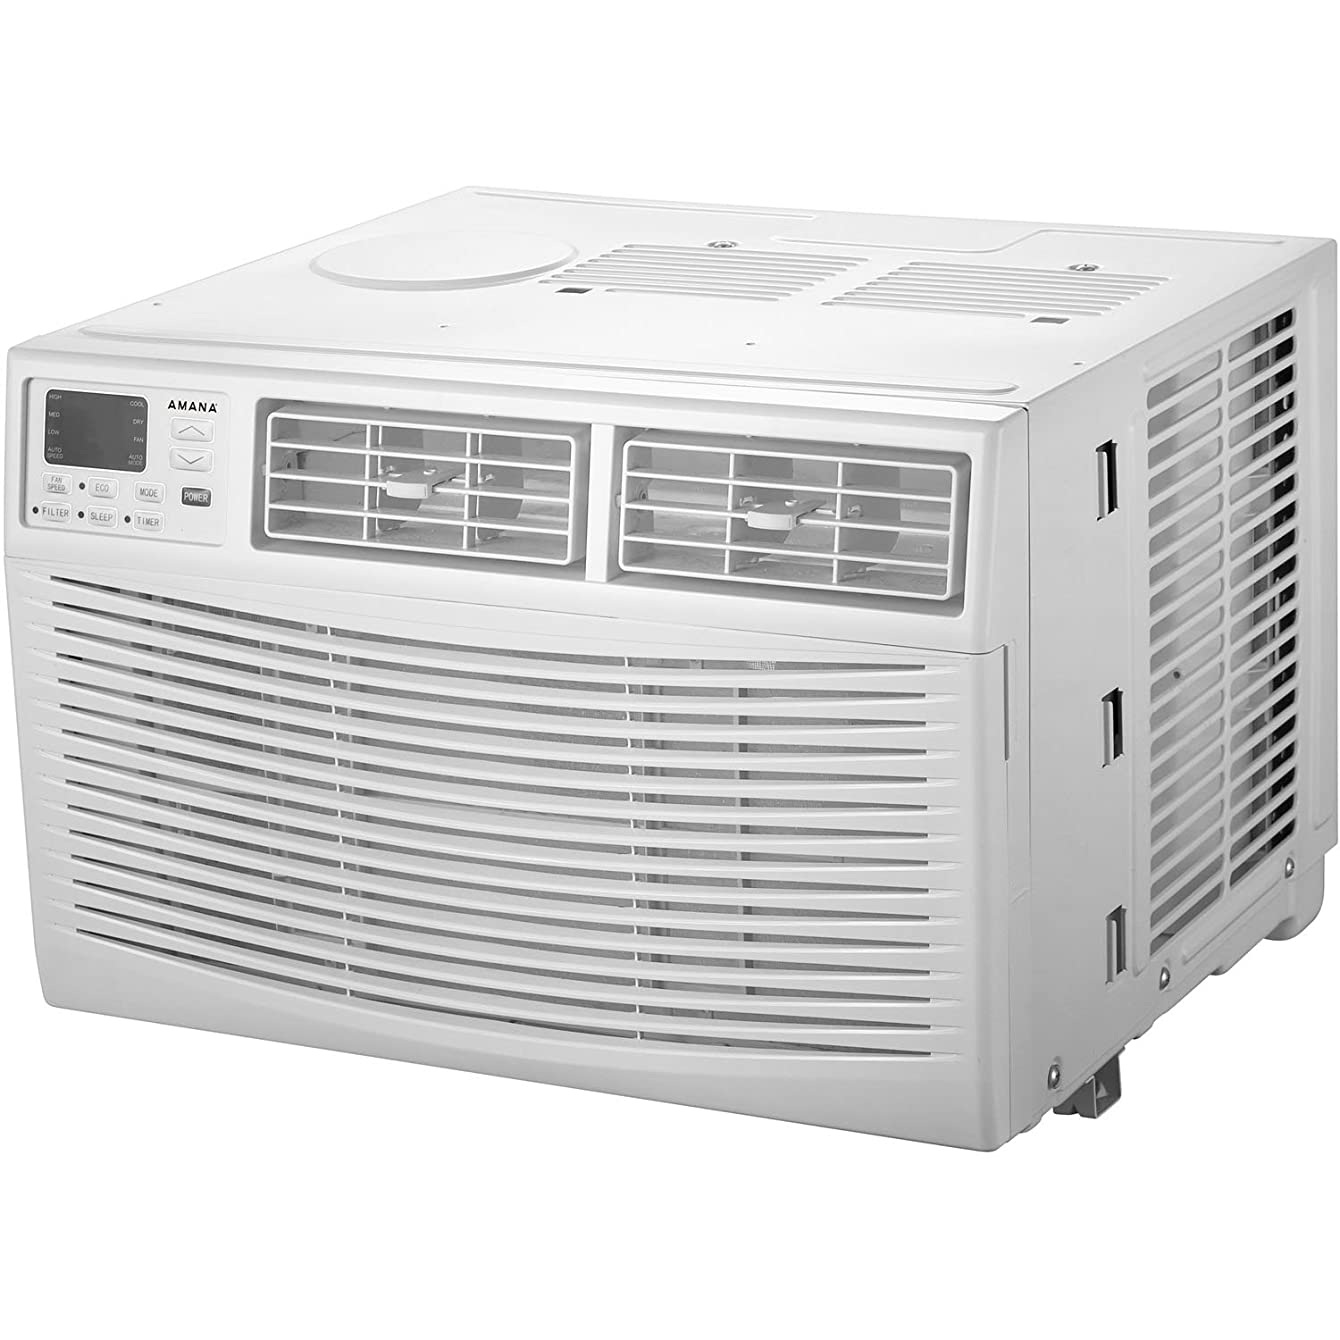 Amana 12,000 BTU 115V Window-Mounted Air Conditioner with Remote Control, White